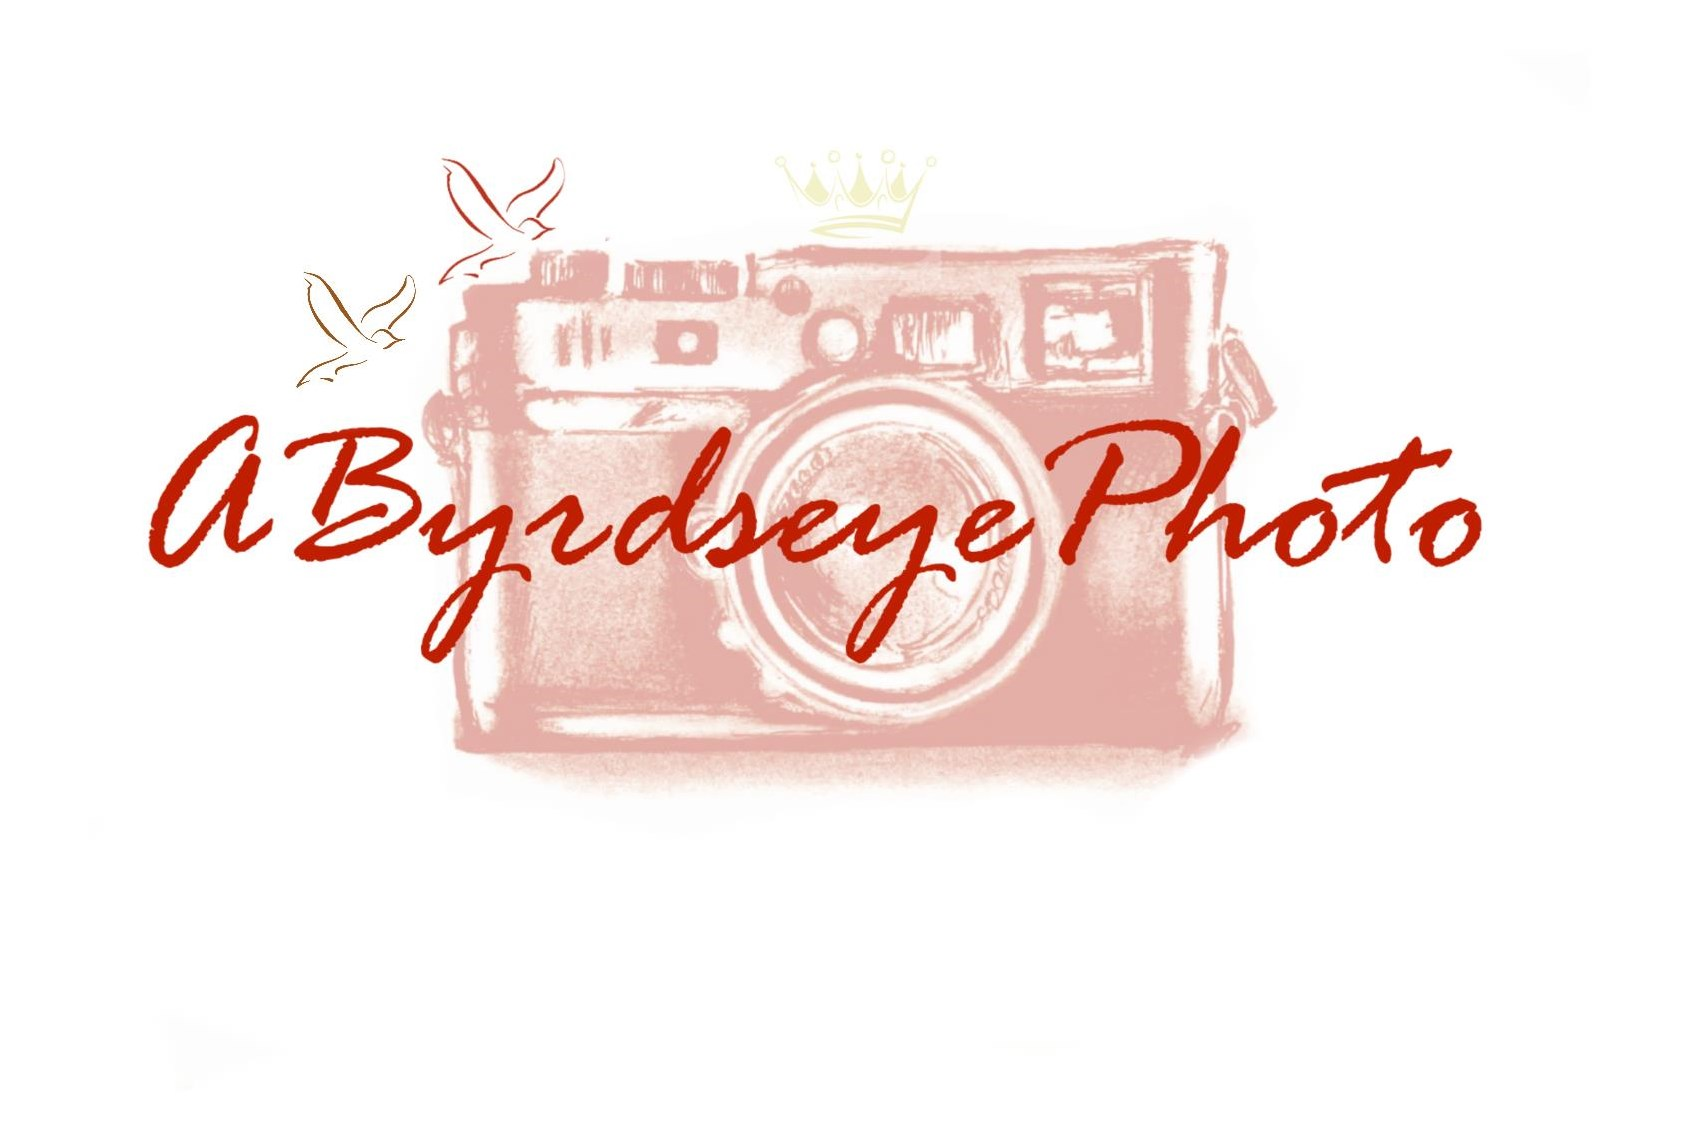 aByrdseyephoto Newborn & Maternity Portrait Sessions, Toledo Ohio